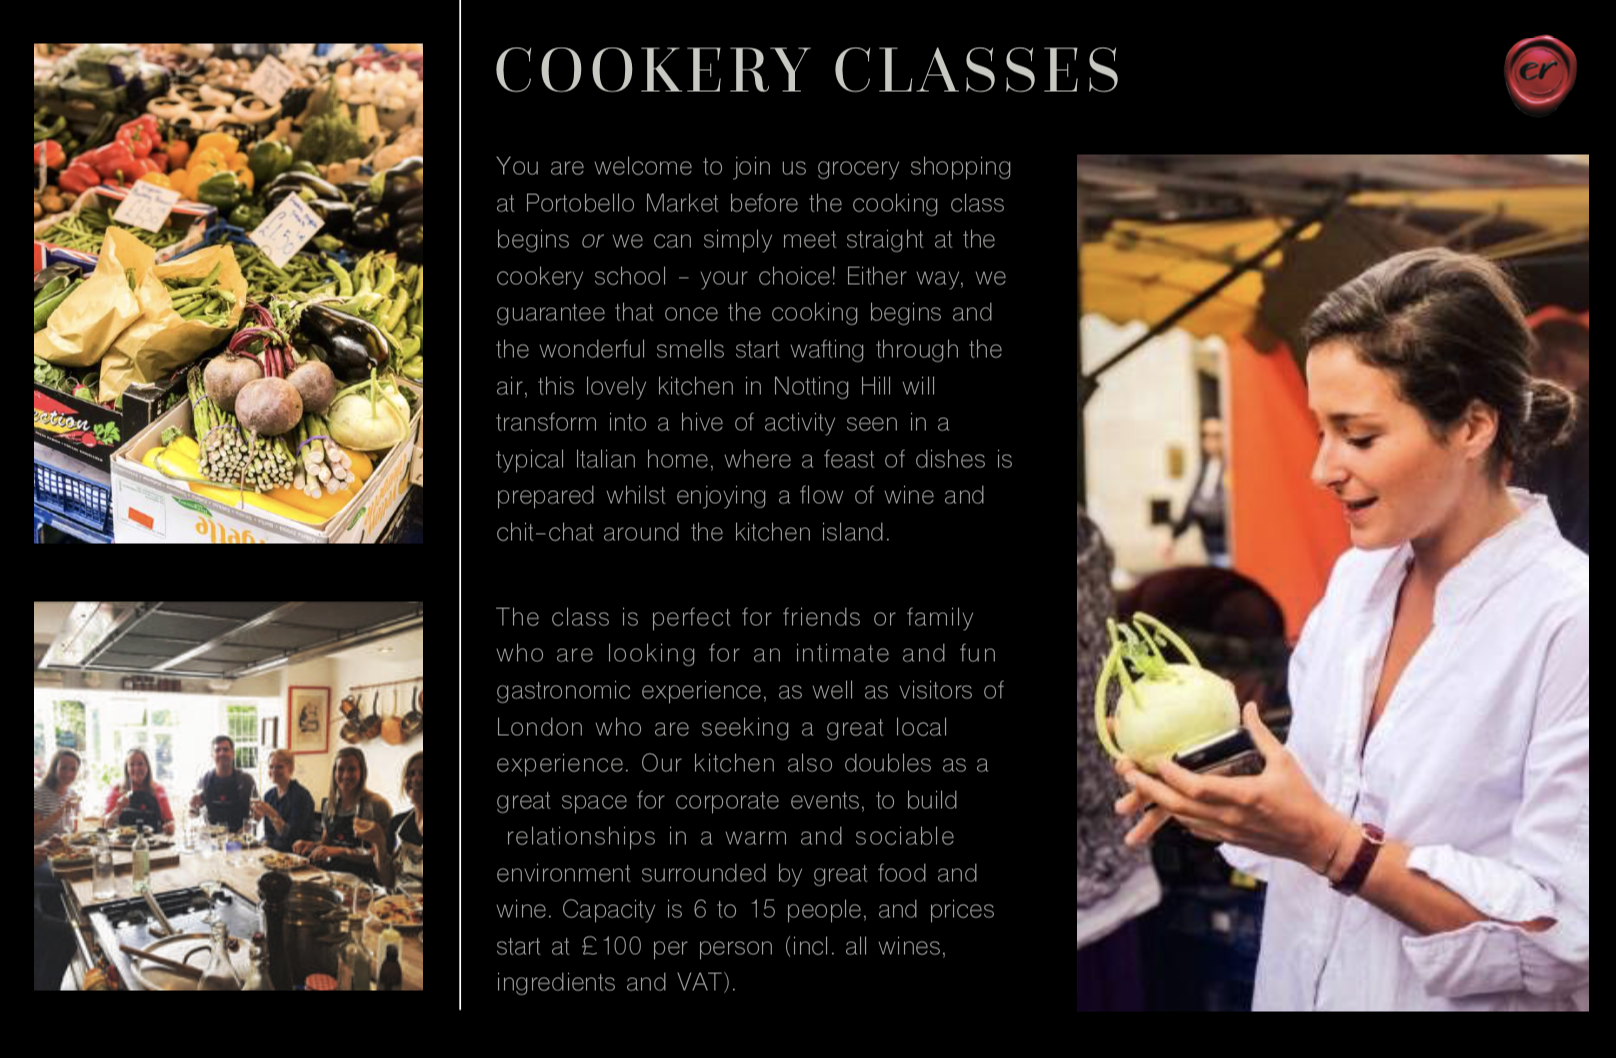 enrica rocca cookery school press kit 4.png